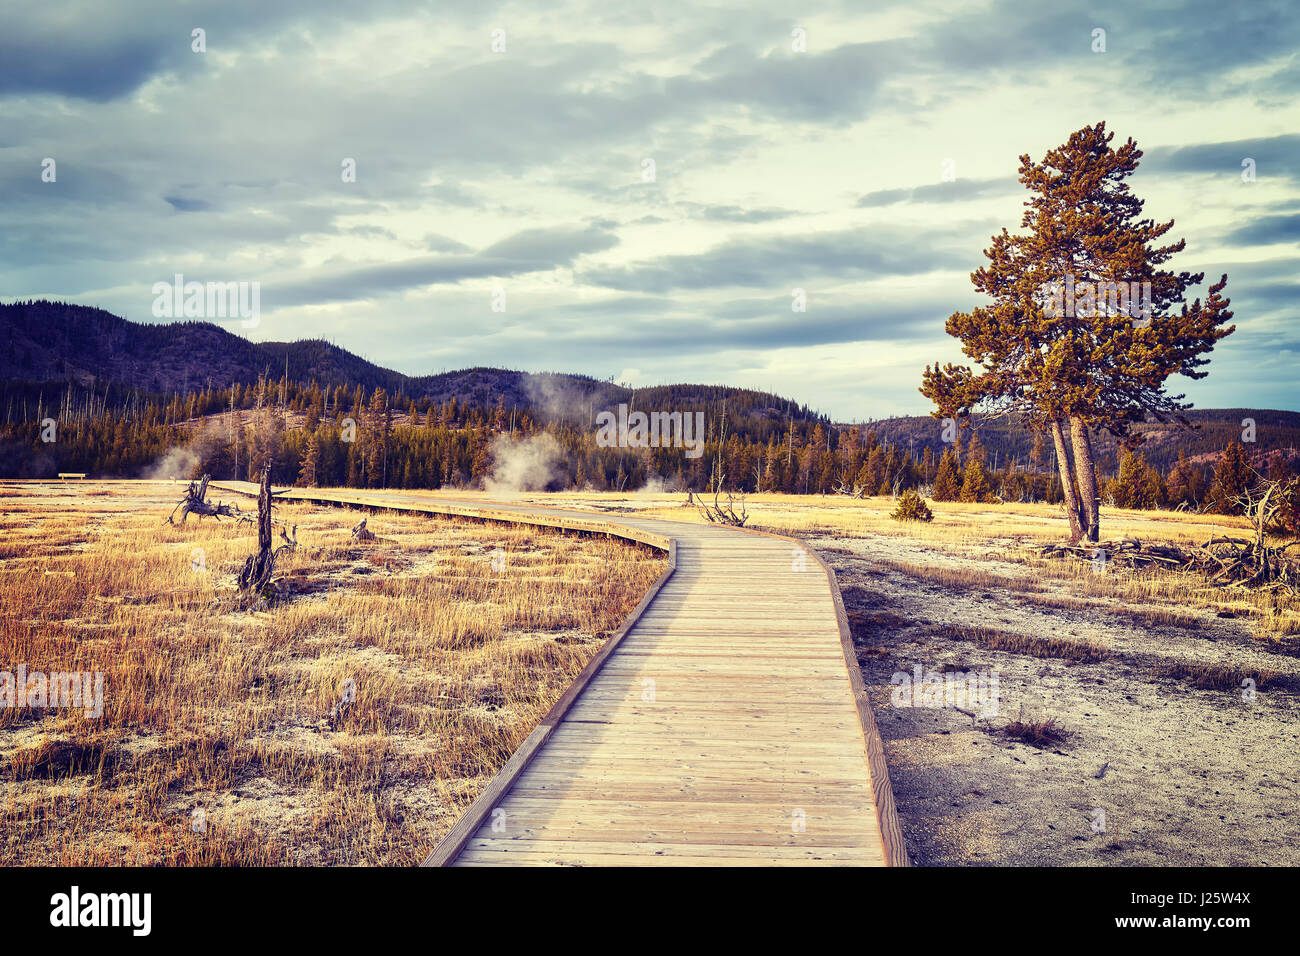 Vintage toned wooden path in Yellowstone National Park, Wyoming, USA. - Stock Image